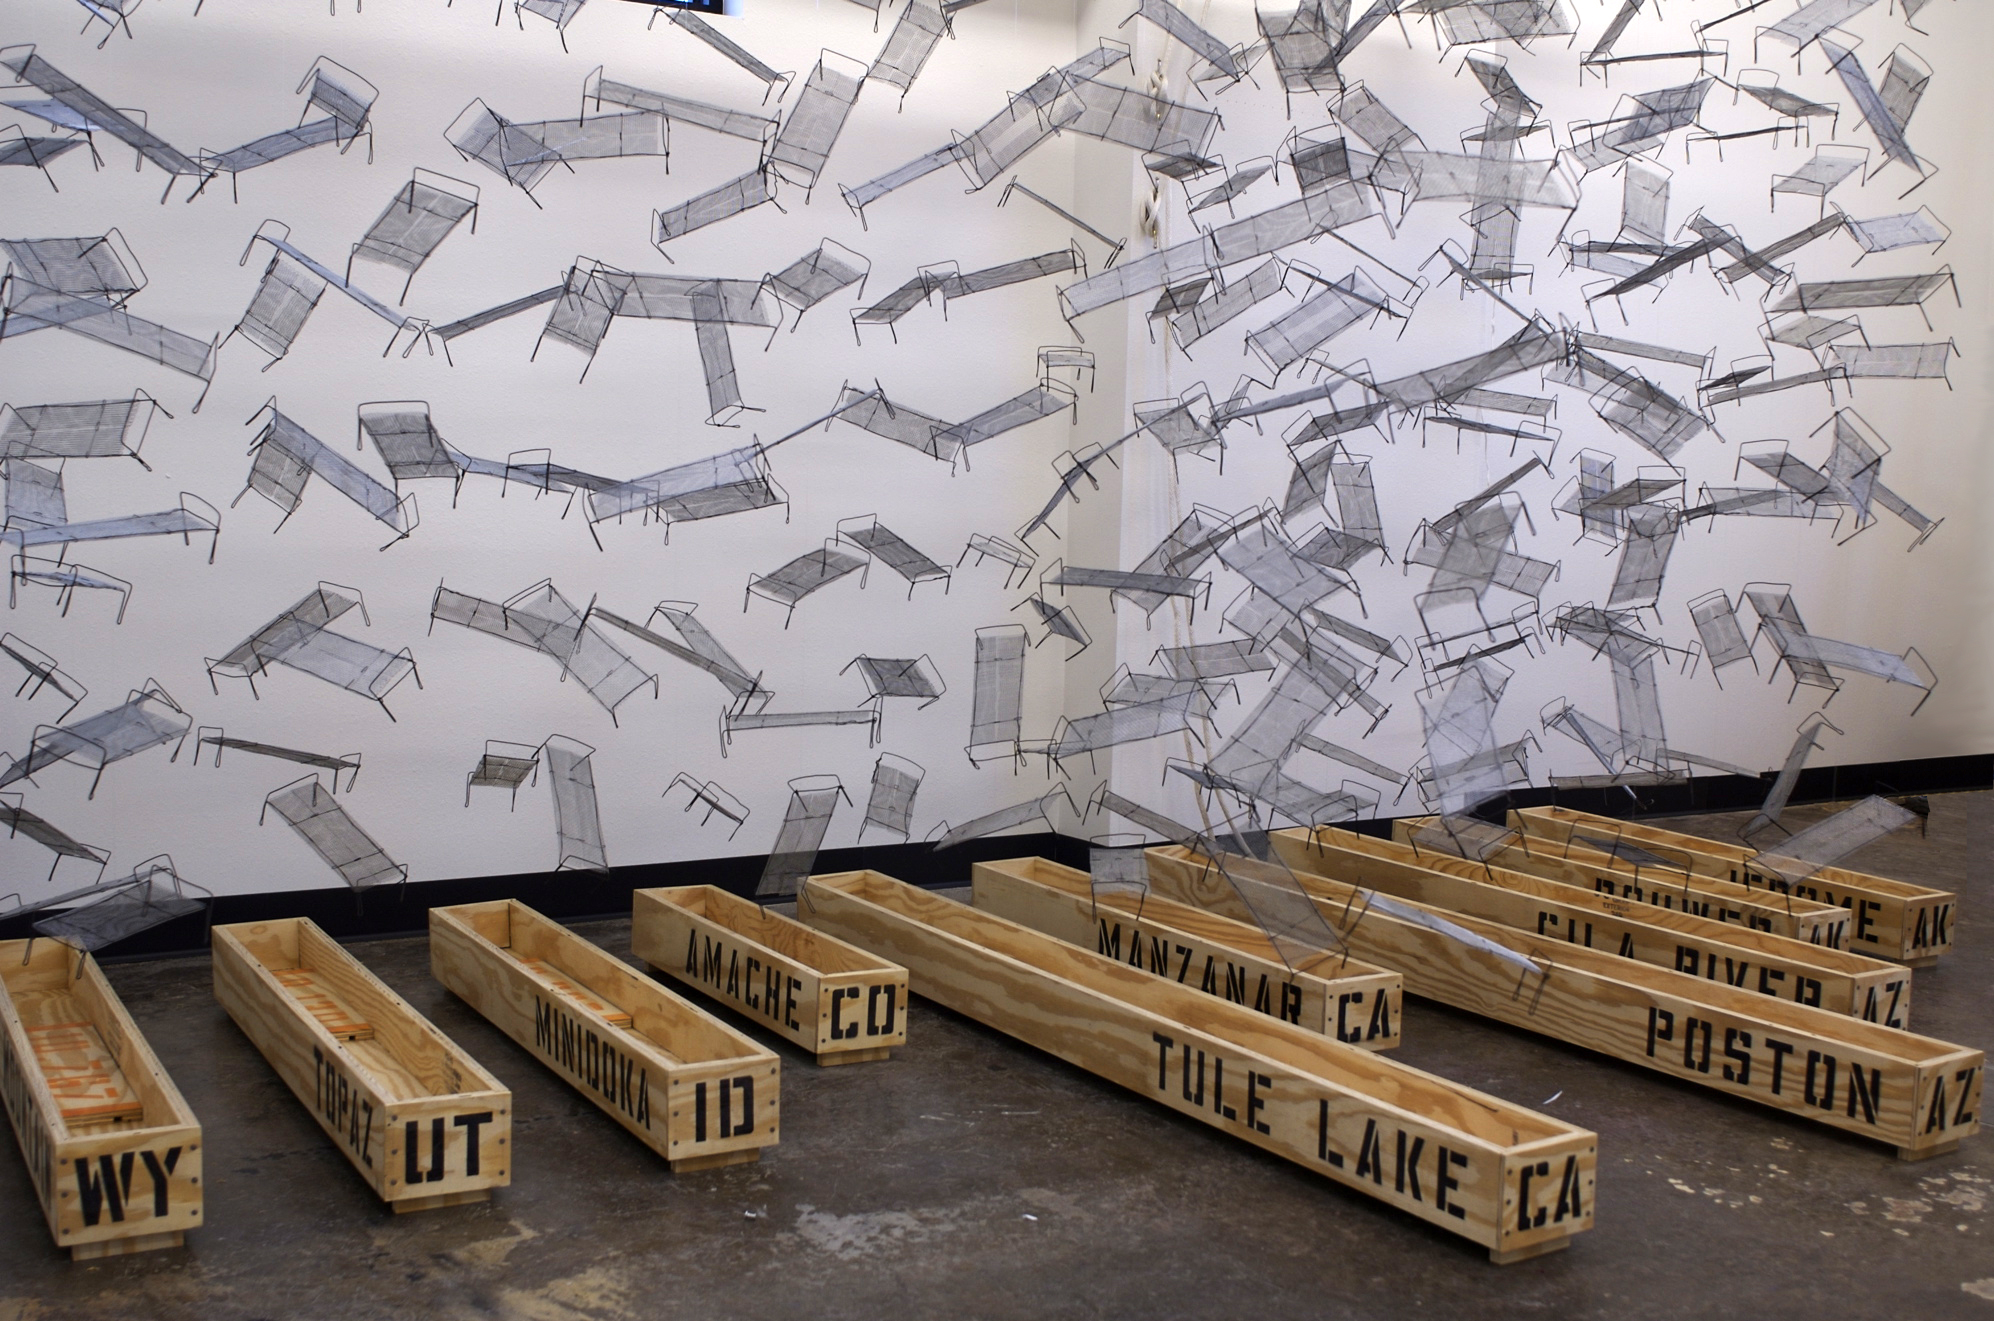 Life Interrupted: The Internment Camps, plywood, wire, wire mesh, spray paint, 6' x 11' x 7'